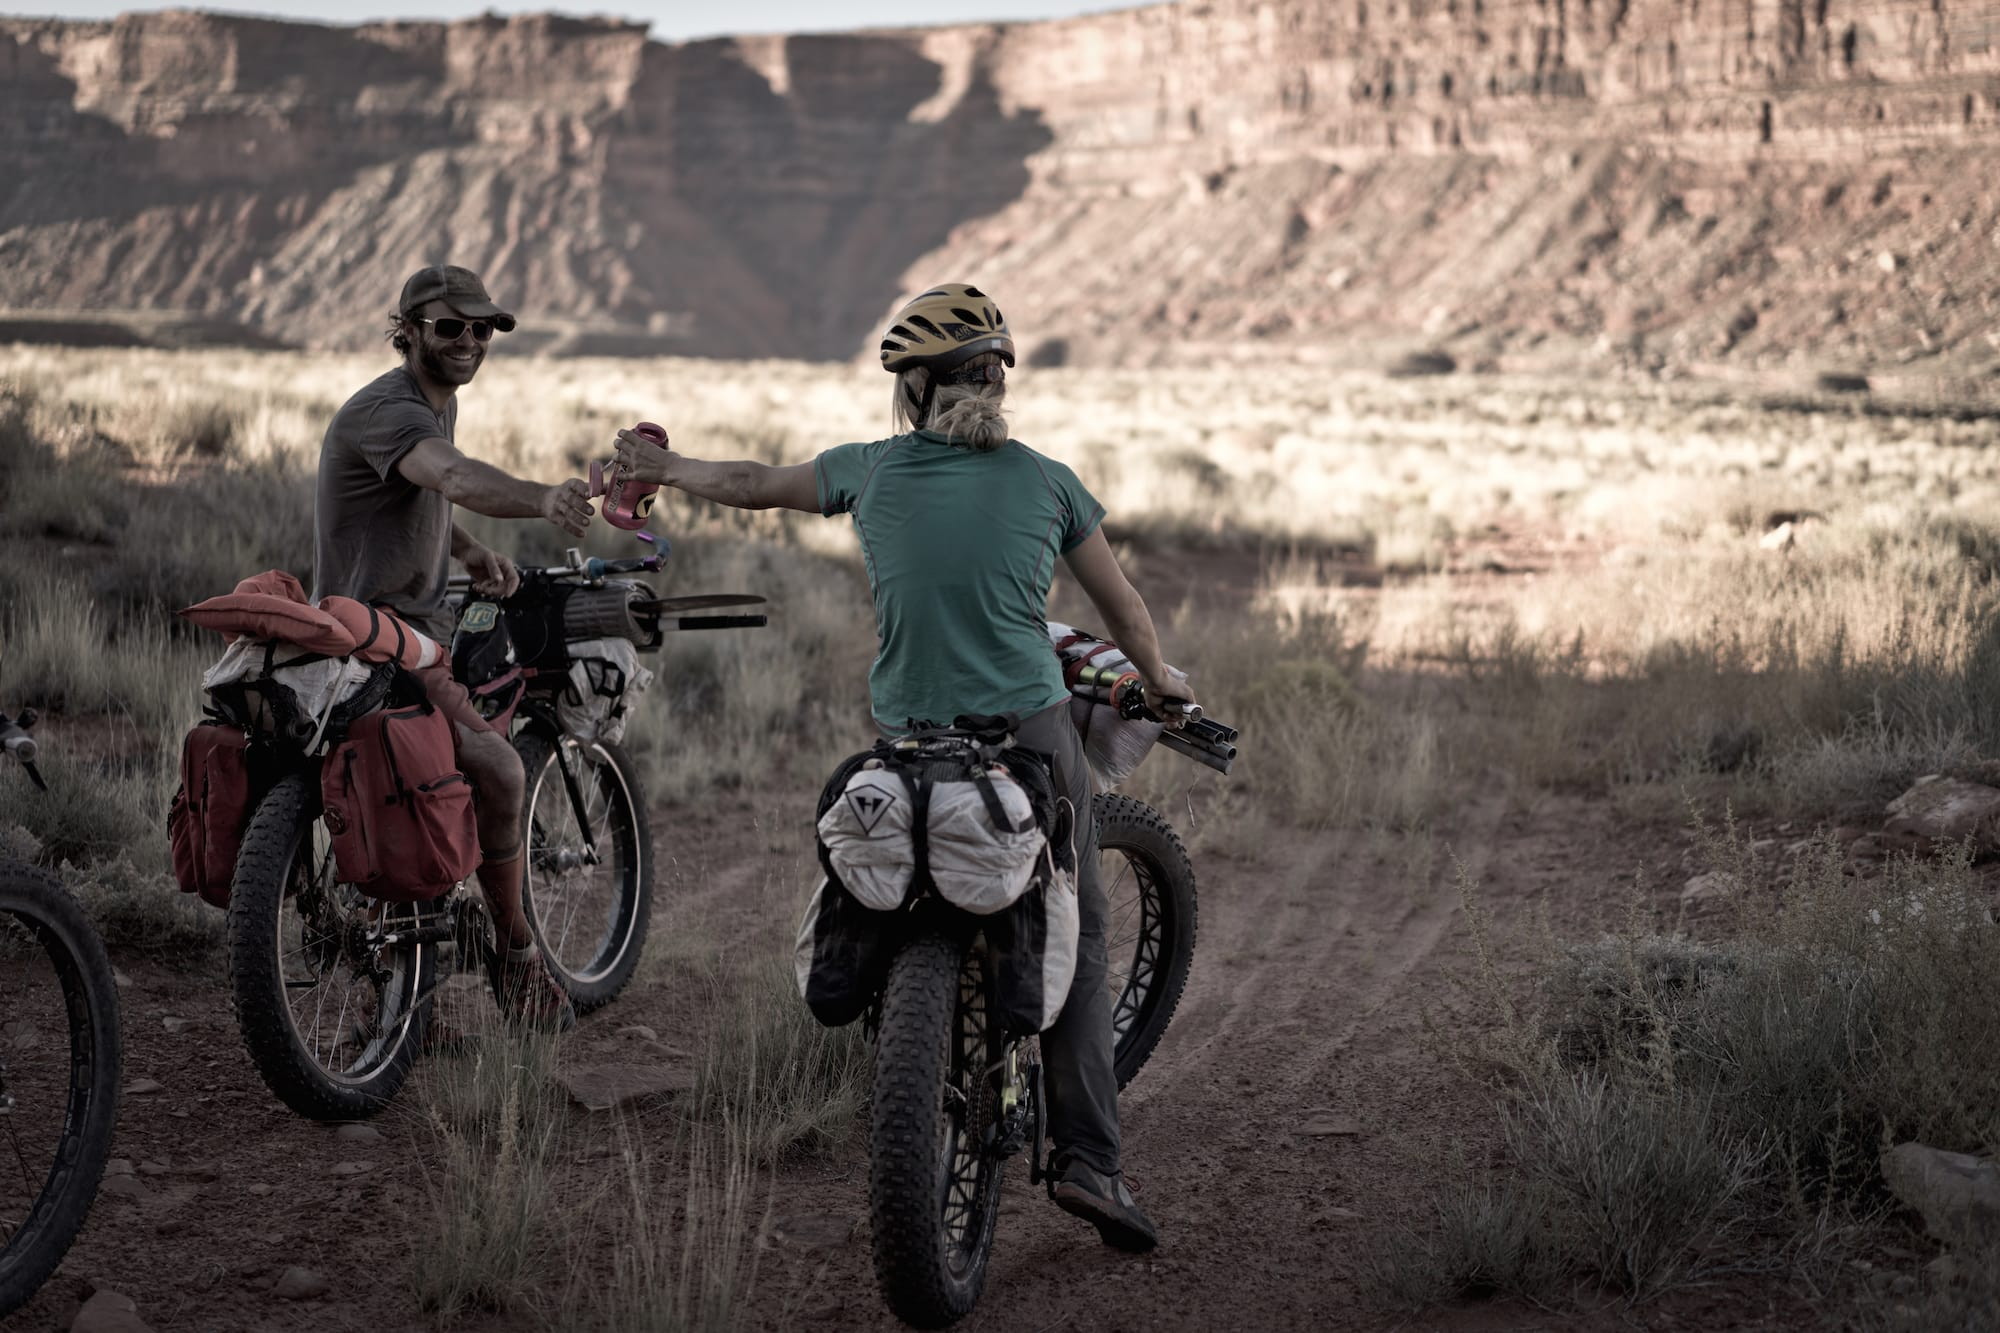 With a first ascent under their belts and a nice clean line left behind, the group returned to their bikes via a grueling 10-hour overland slog seeking shelter from the sun at every opportunity provided.